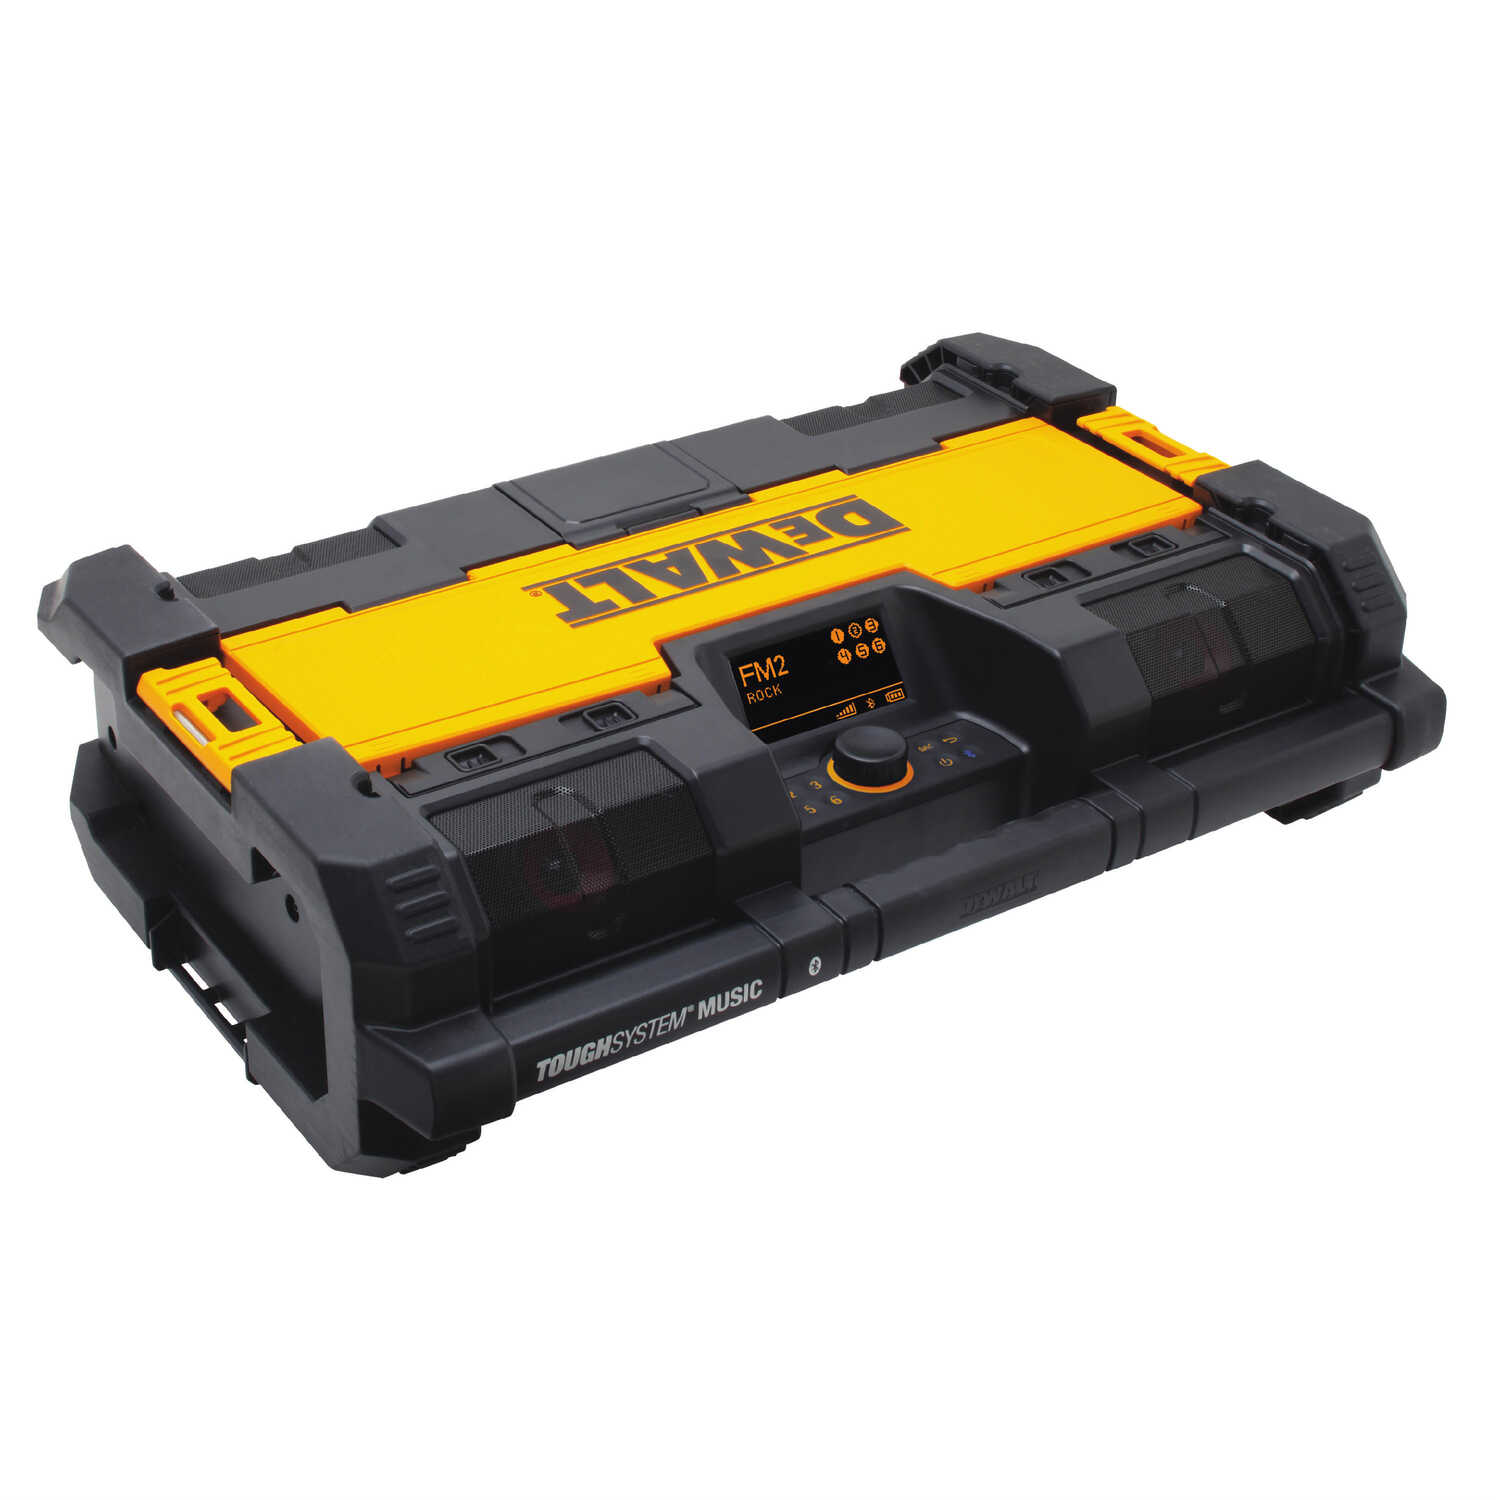 DeWalt  ToughSystem  20 volt Lithium-Ion  Worksite Radio and Charger  1 pc.